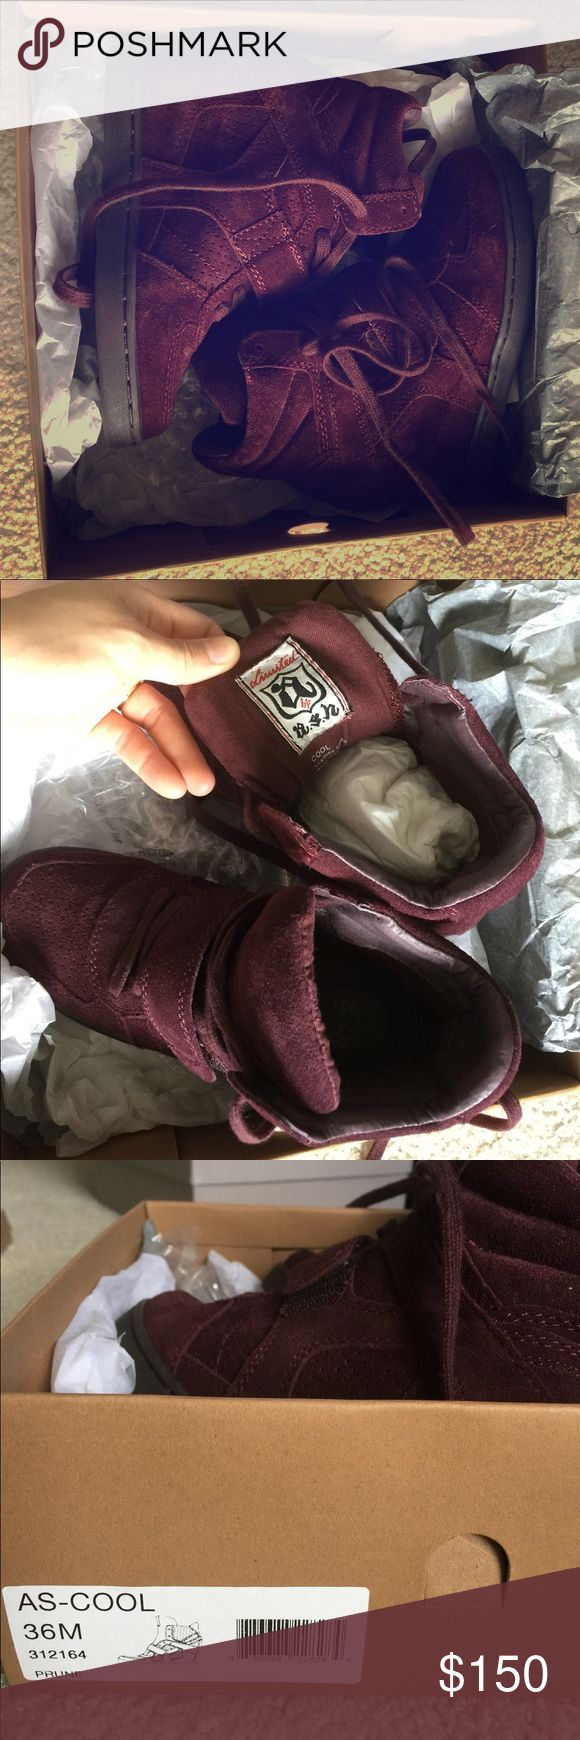 Selling this Ash Bowie Lace-up Suede Sneaker Bootie - Barolo on Poshmark! My username is: arksweet. #shopmycloset #poshmark #fashion #shopping #style #forsale #Ash #Shoes